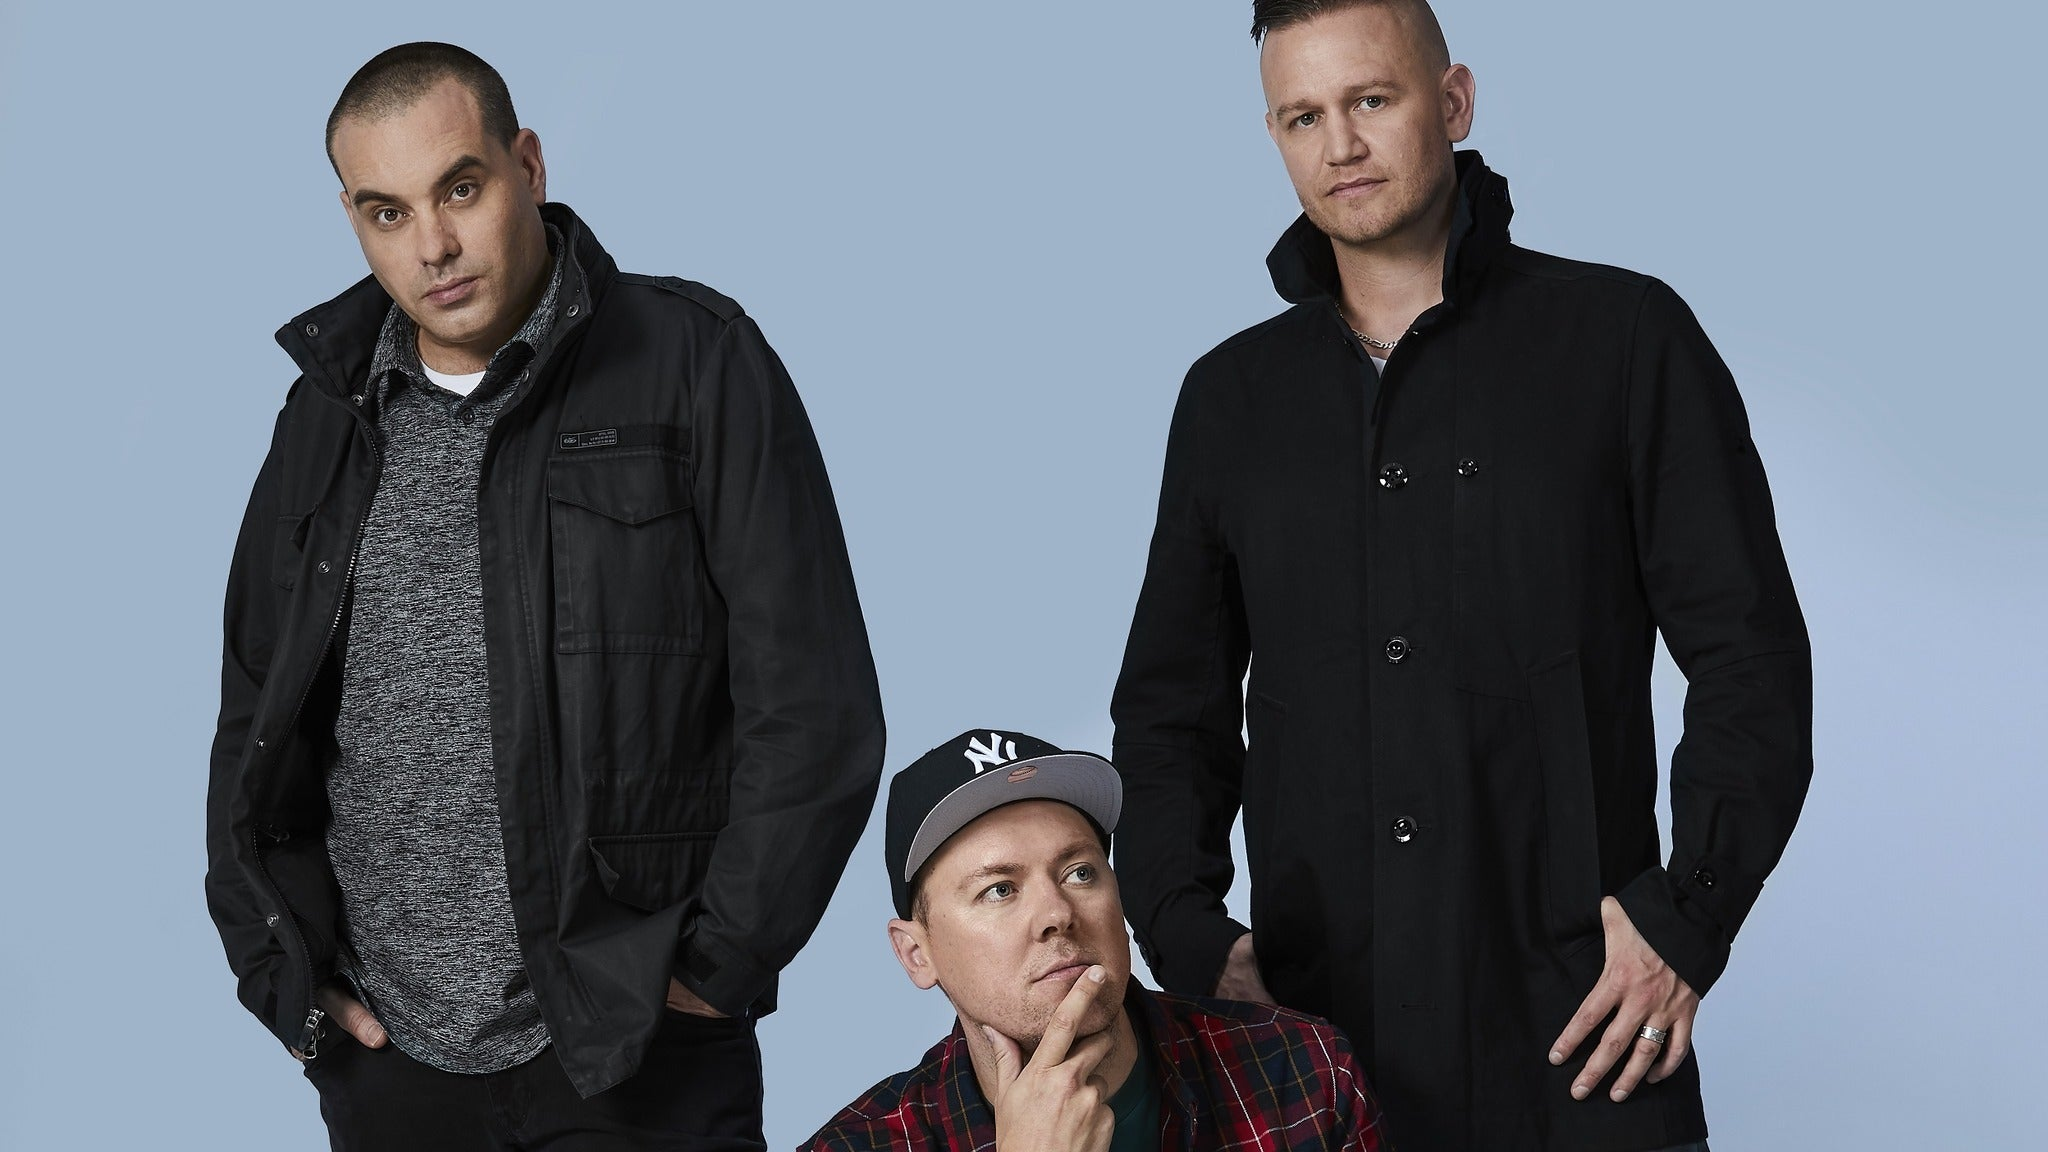 Hilltop Hoods at Metro Music Hall - UT